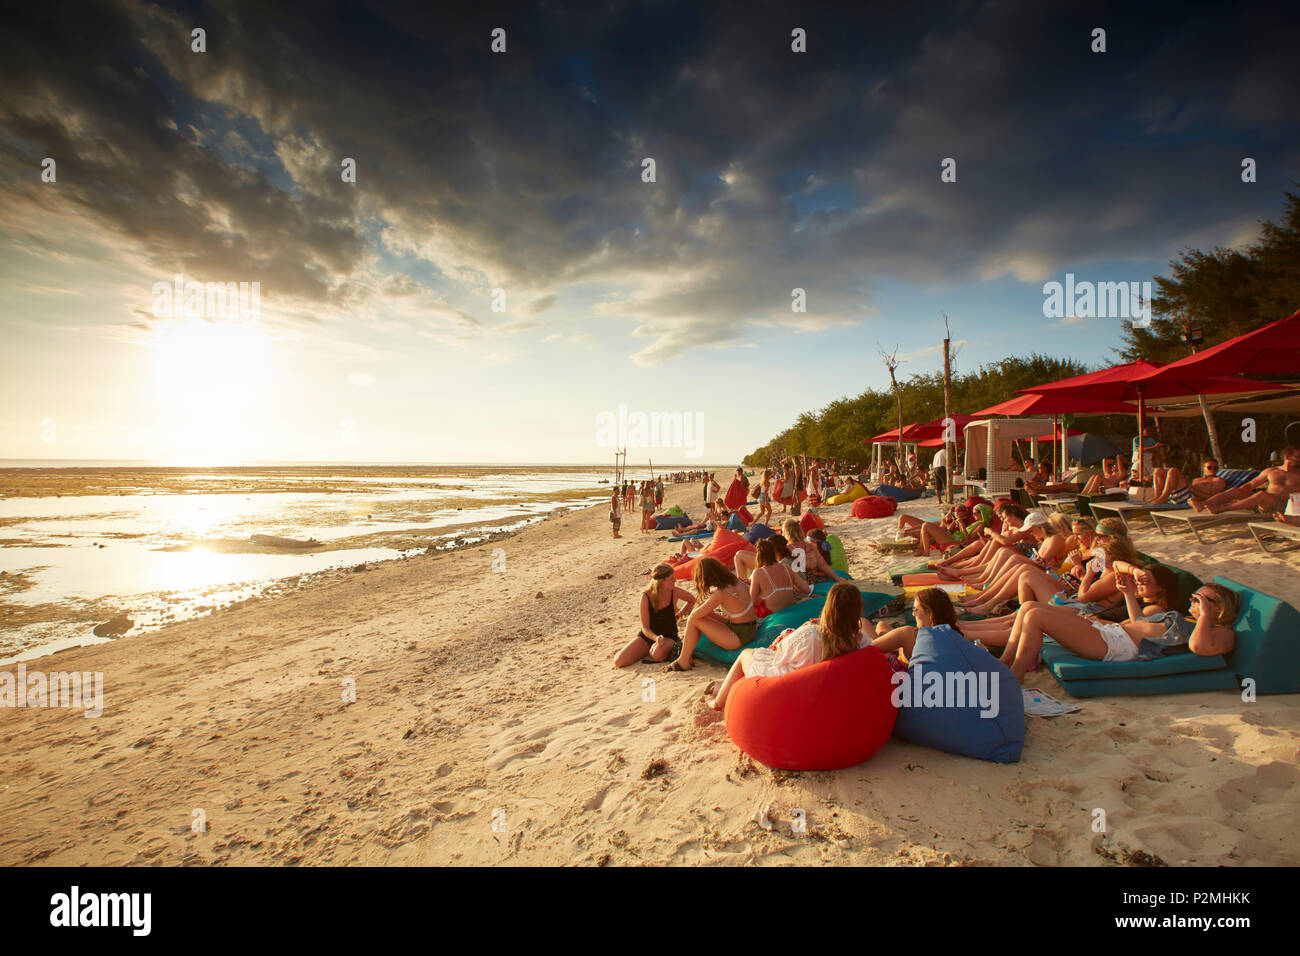 Invités dans un bar de plage, Gili Trawangan, Lombok, Indonésie Photo Stock